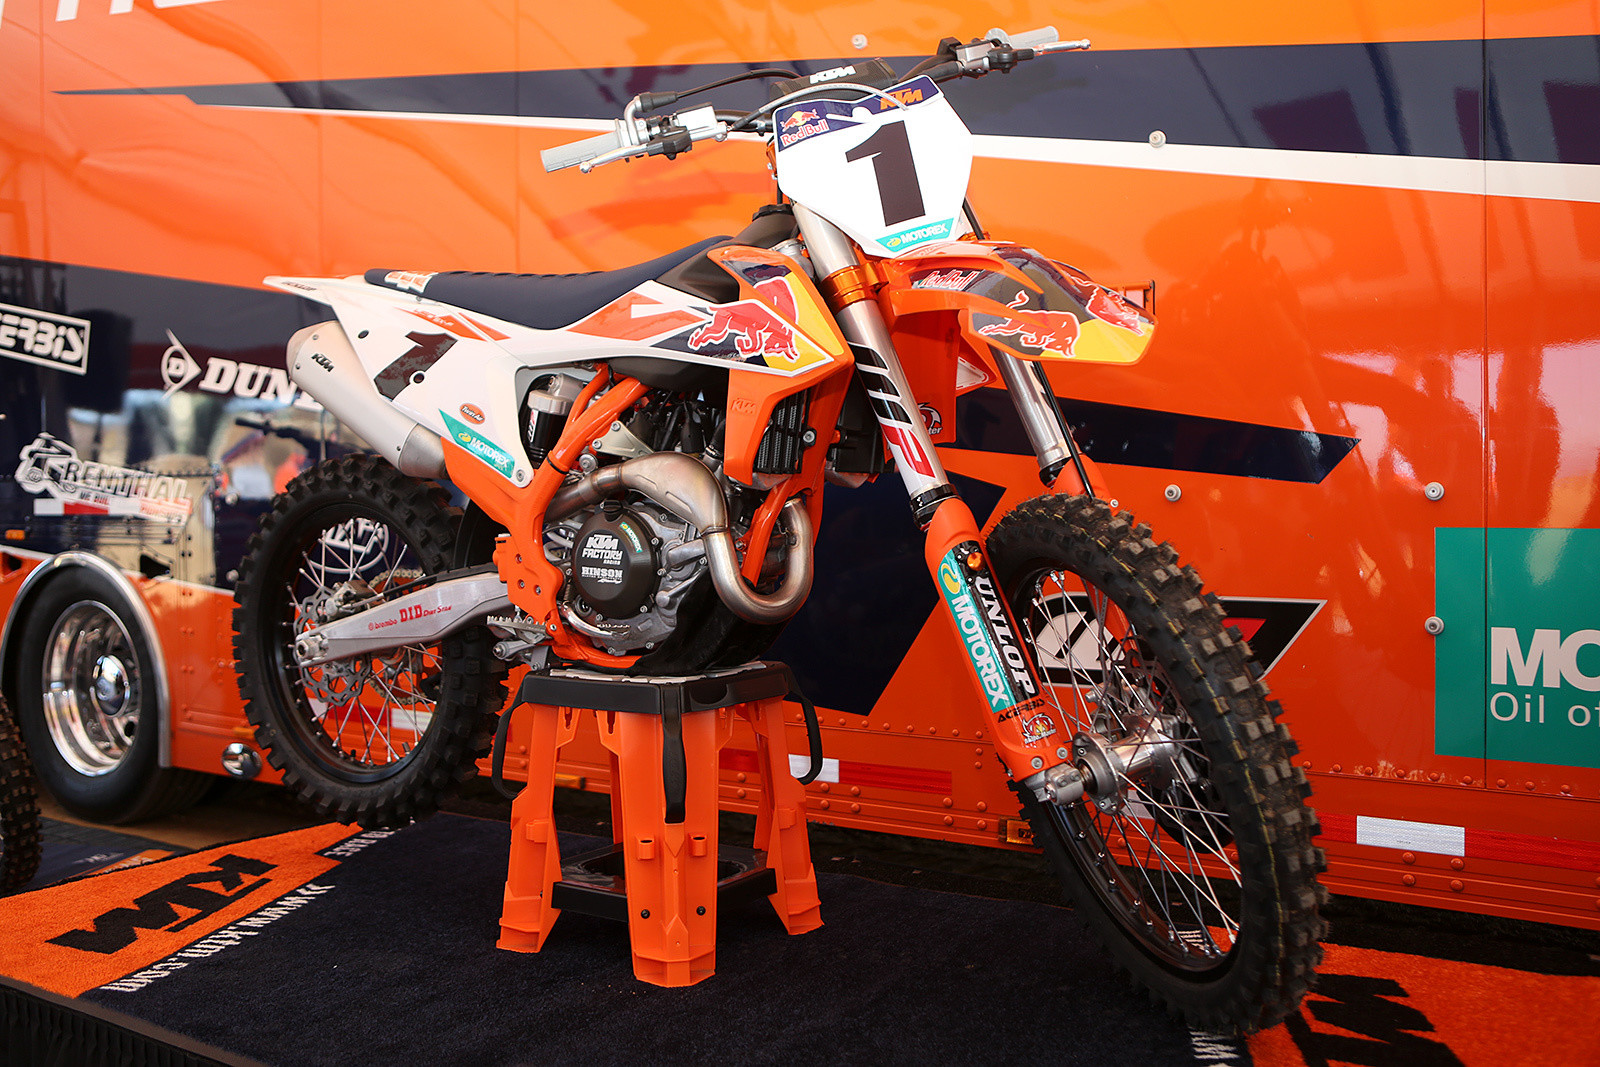 "The new 2018 KTM 450 SX-F Factory Edition. Besides the obious differences in plastic and the exhaust, you can check out more on it here. <a href=""http://www.vitalmx.com/features/First-Look-2018-KTM-450-SX-F-Factory-Edition,5676"" target=""_blank"">First Look: 2018 KTM 450 SX-F Factory Edition</a><br><a href=""http://www.vitalmx.com/videos/features/Walk-Around-Tech-Brief-on-the-2018-KTM-450-SX-F-Factory-Edition,16340/ML512,13480"" target=""_blank"">Tech Brief on the 2018 KTM 450 SX-F Factory Edition</a>"